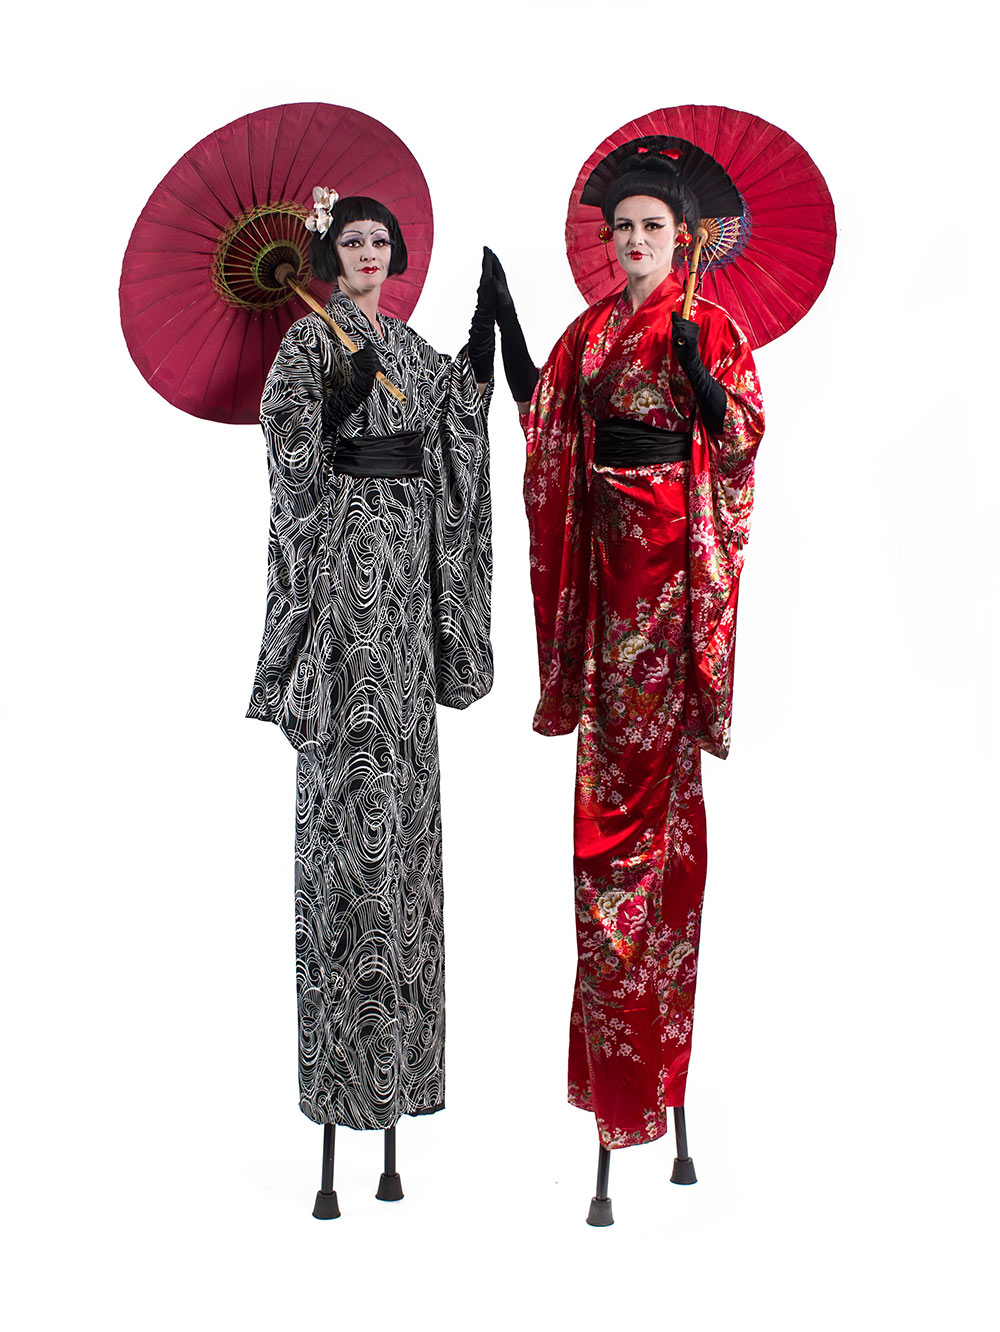 Geishas - Stilt Walkers